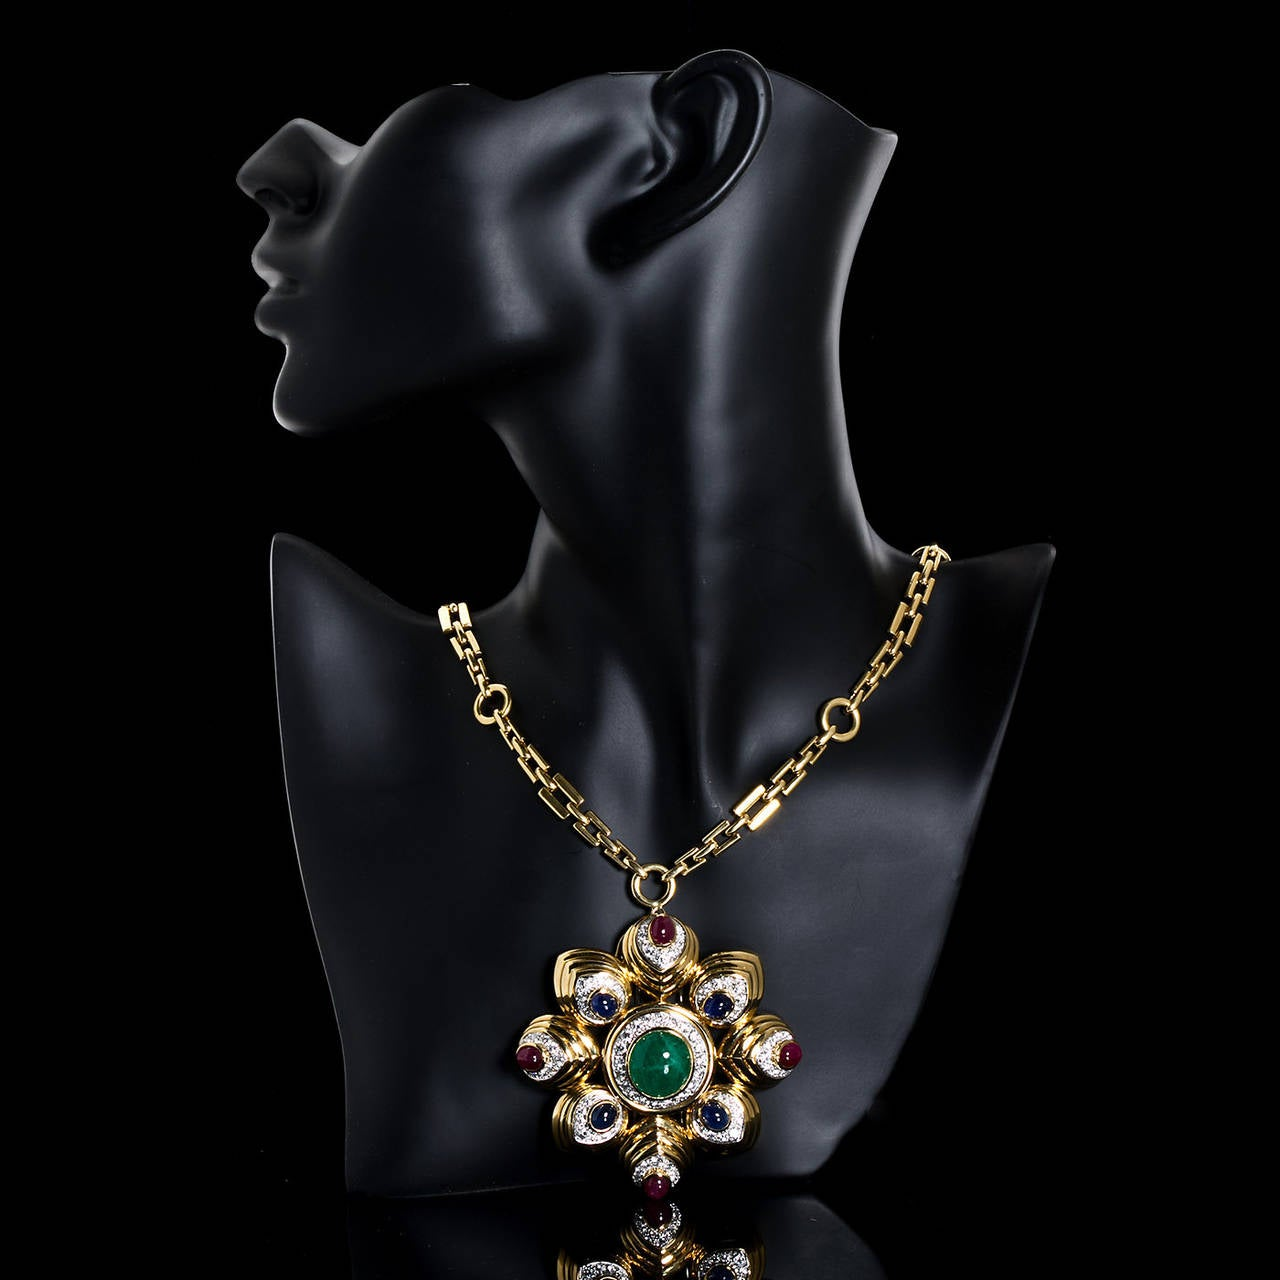 David Webb Large Cabochon Gem Combination Pendant Brooch with Chain Necklace In Excellent Condition For Sale In New York, NY